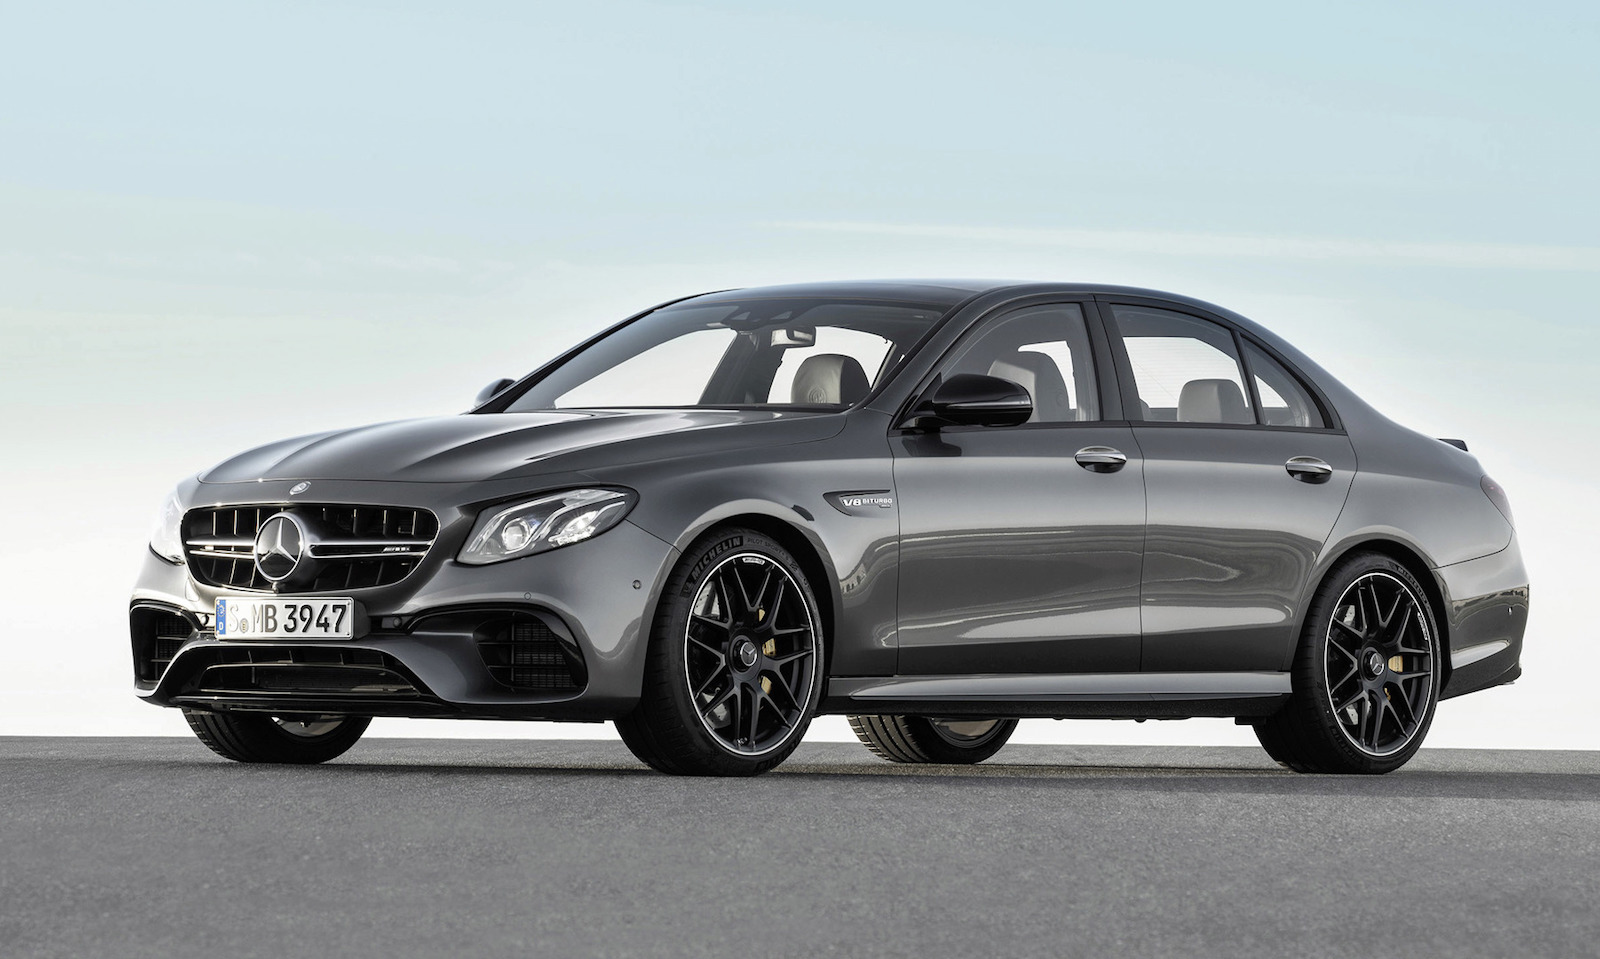 2017 mercedes amg e 63 revealed s packs 450kw performancedrive. Black Bedroom Furniture Sets. Home Design Ideas